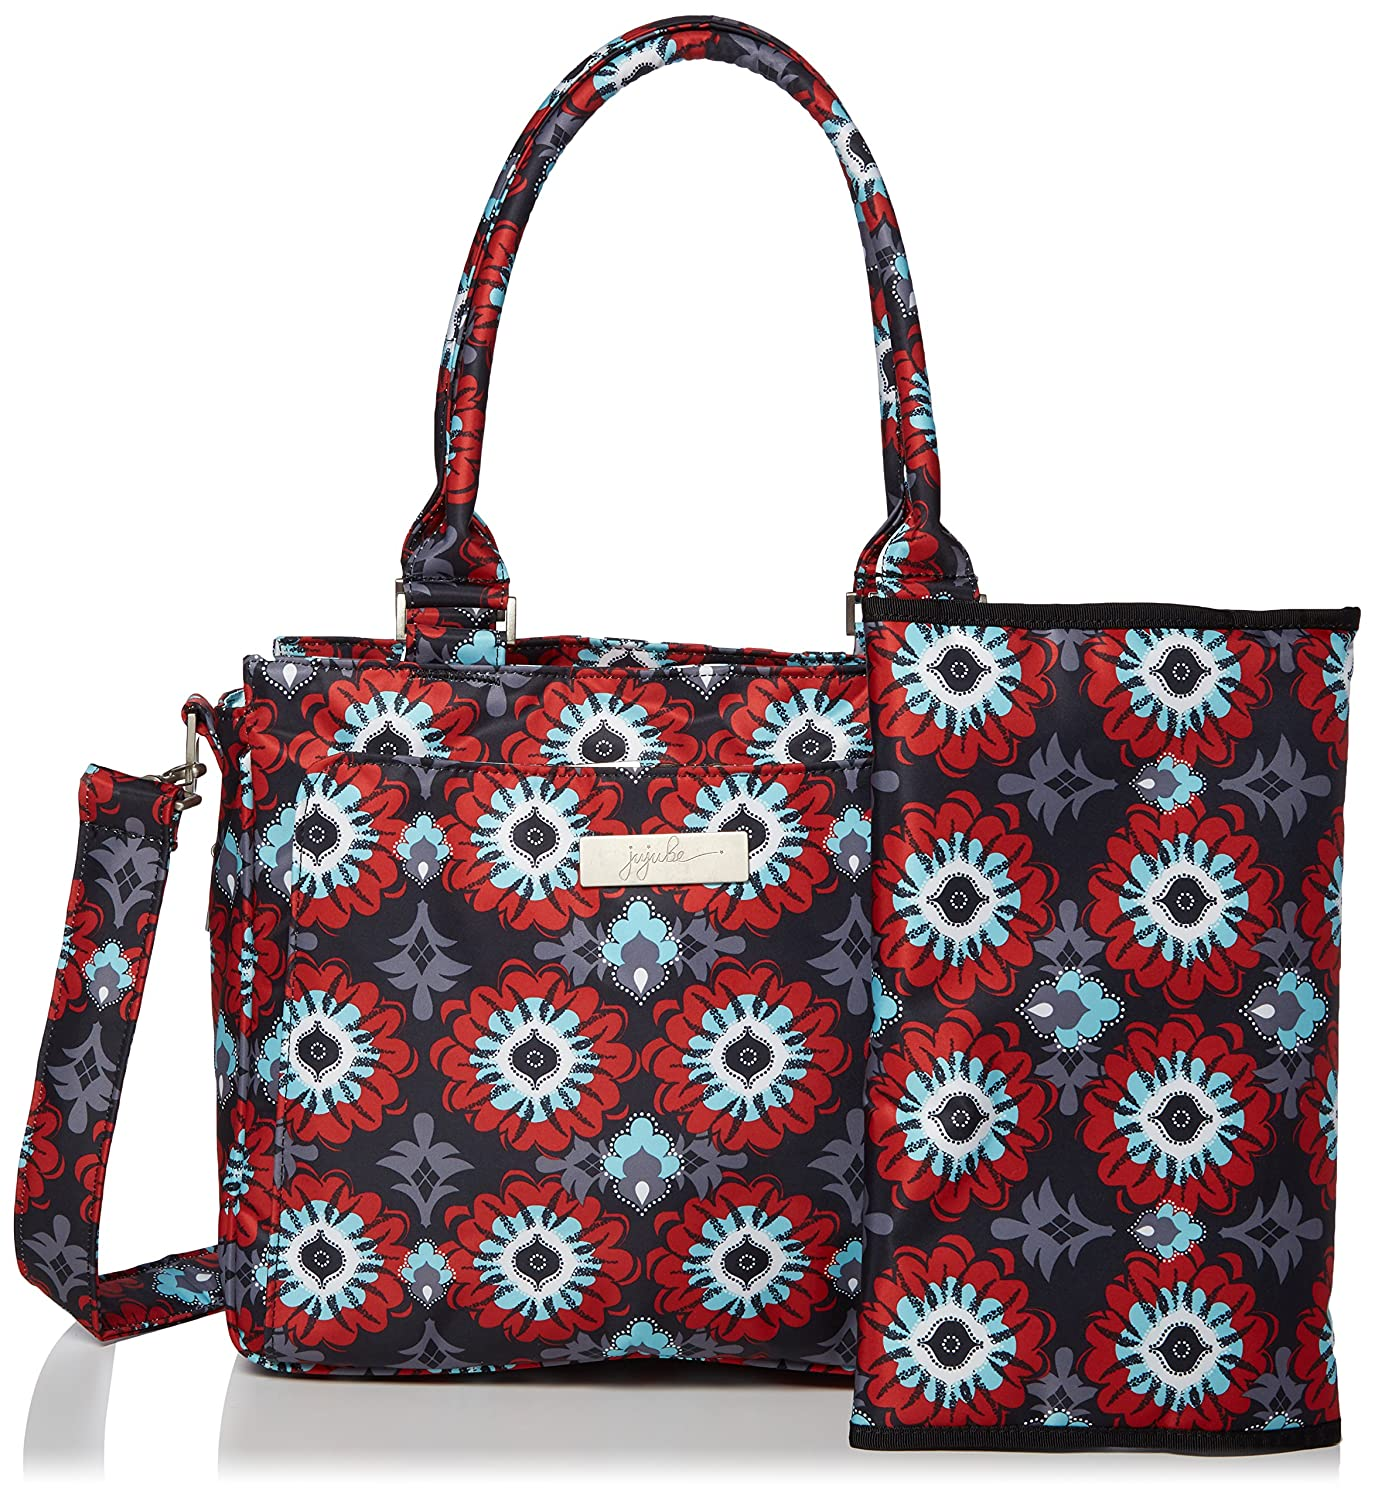 Ju-Ju-Be Be Classy Structured Handbag Diaper Bag, Sweet Scarlet, Red 15FB01A-SSC